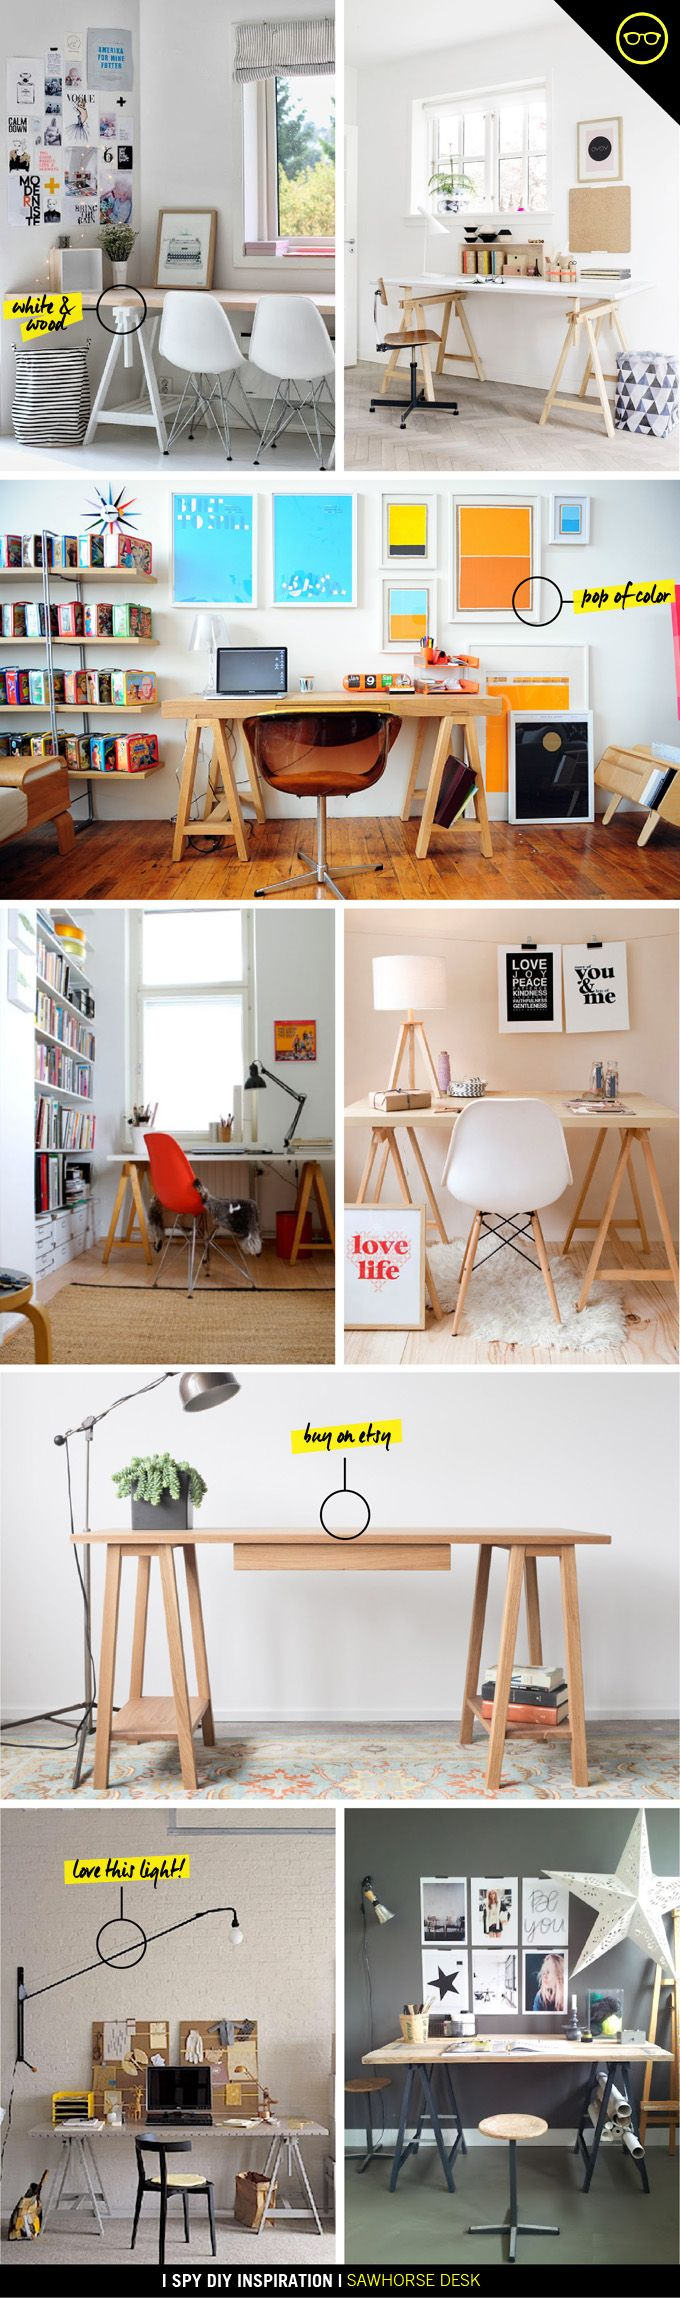 DIY INSPIRATION | Sawhorse Desk....must build our own desk for the study or craft room! It's just too easy not too